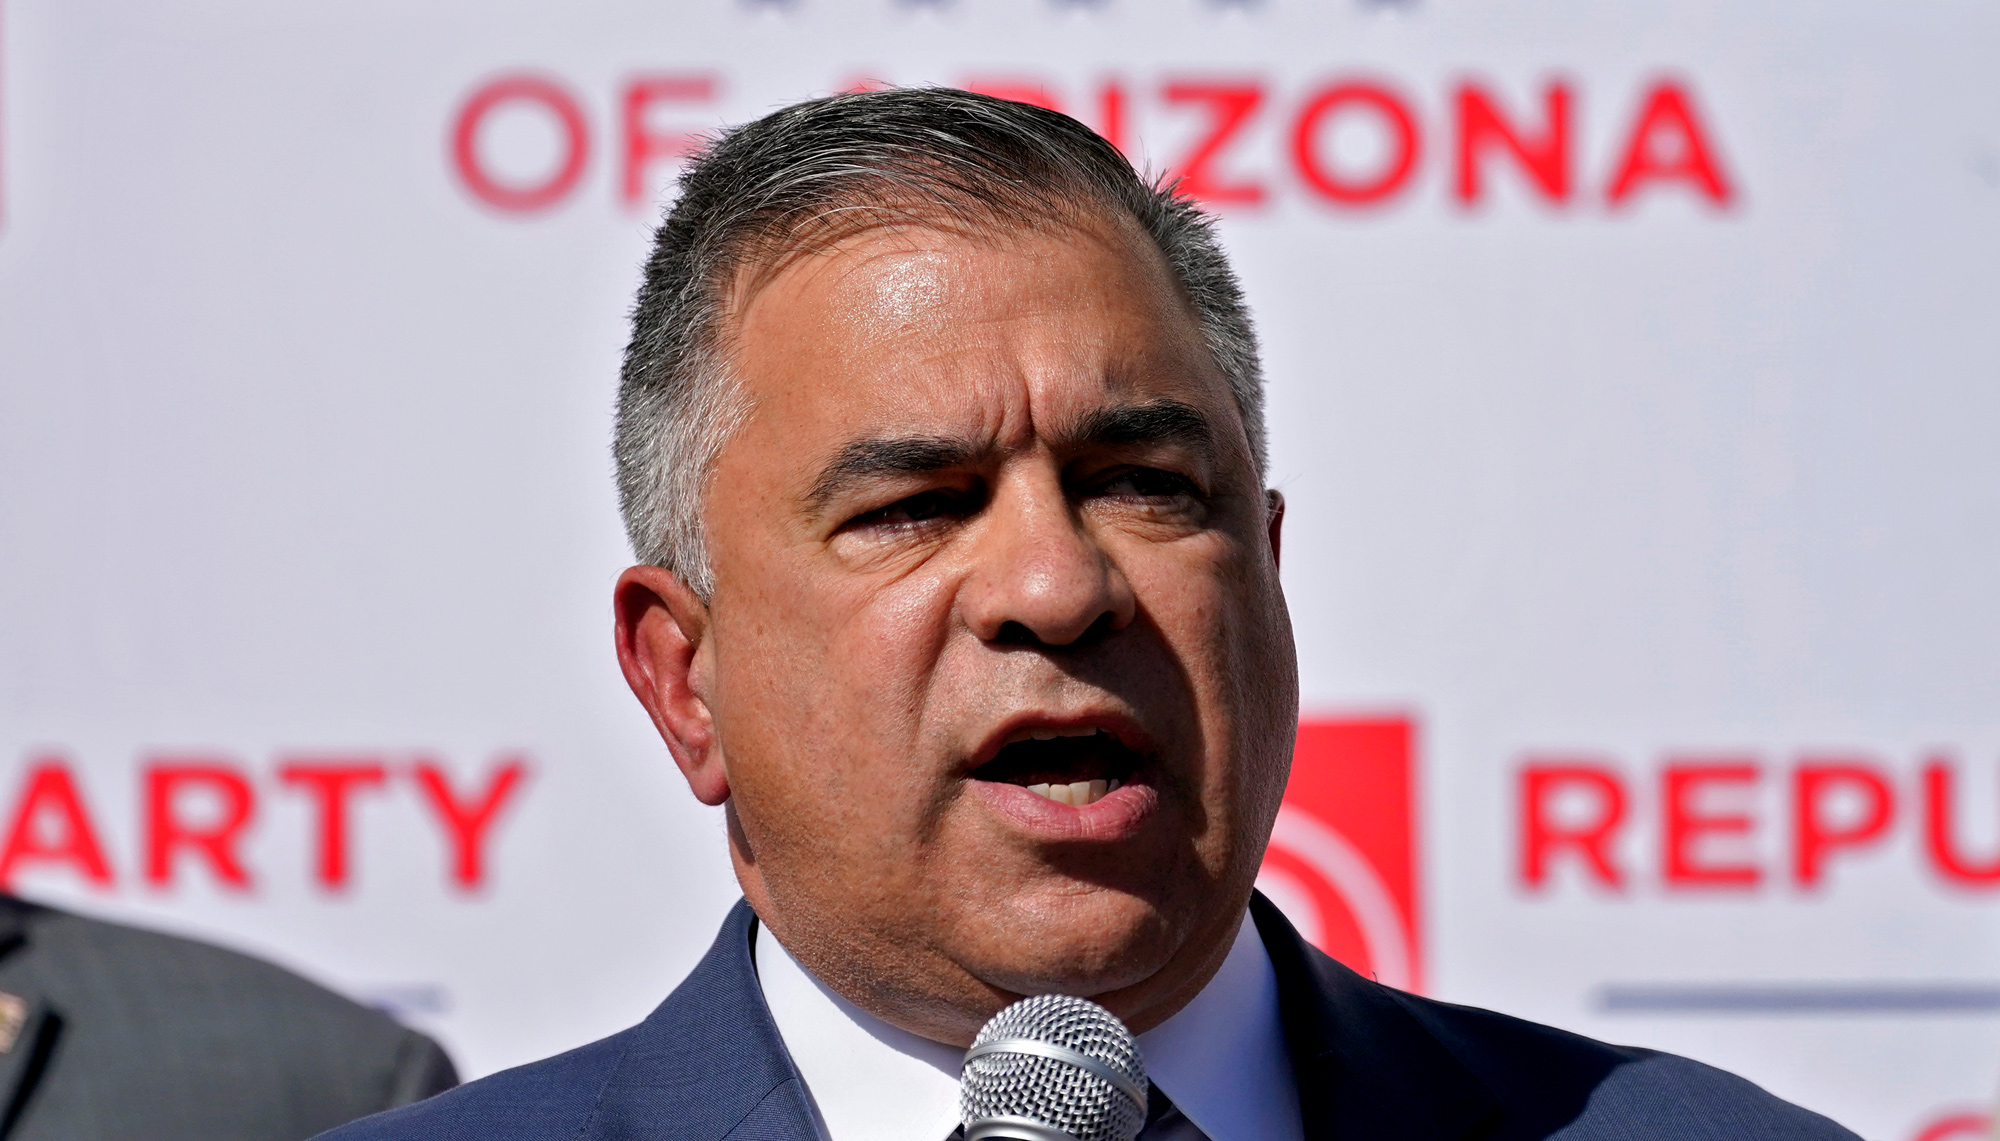 Citizens United President David Bossie speaks during an Arizona Republican Party news conference on November 5 in Phoenix.